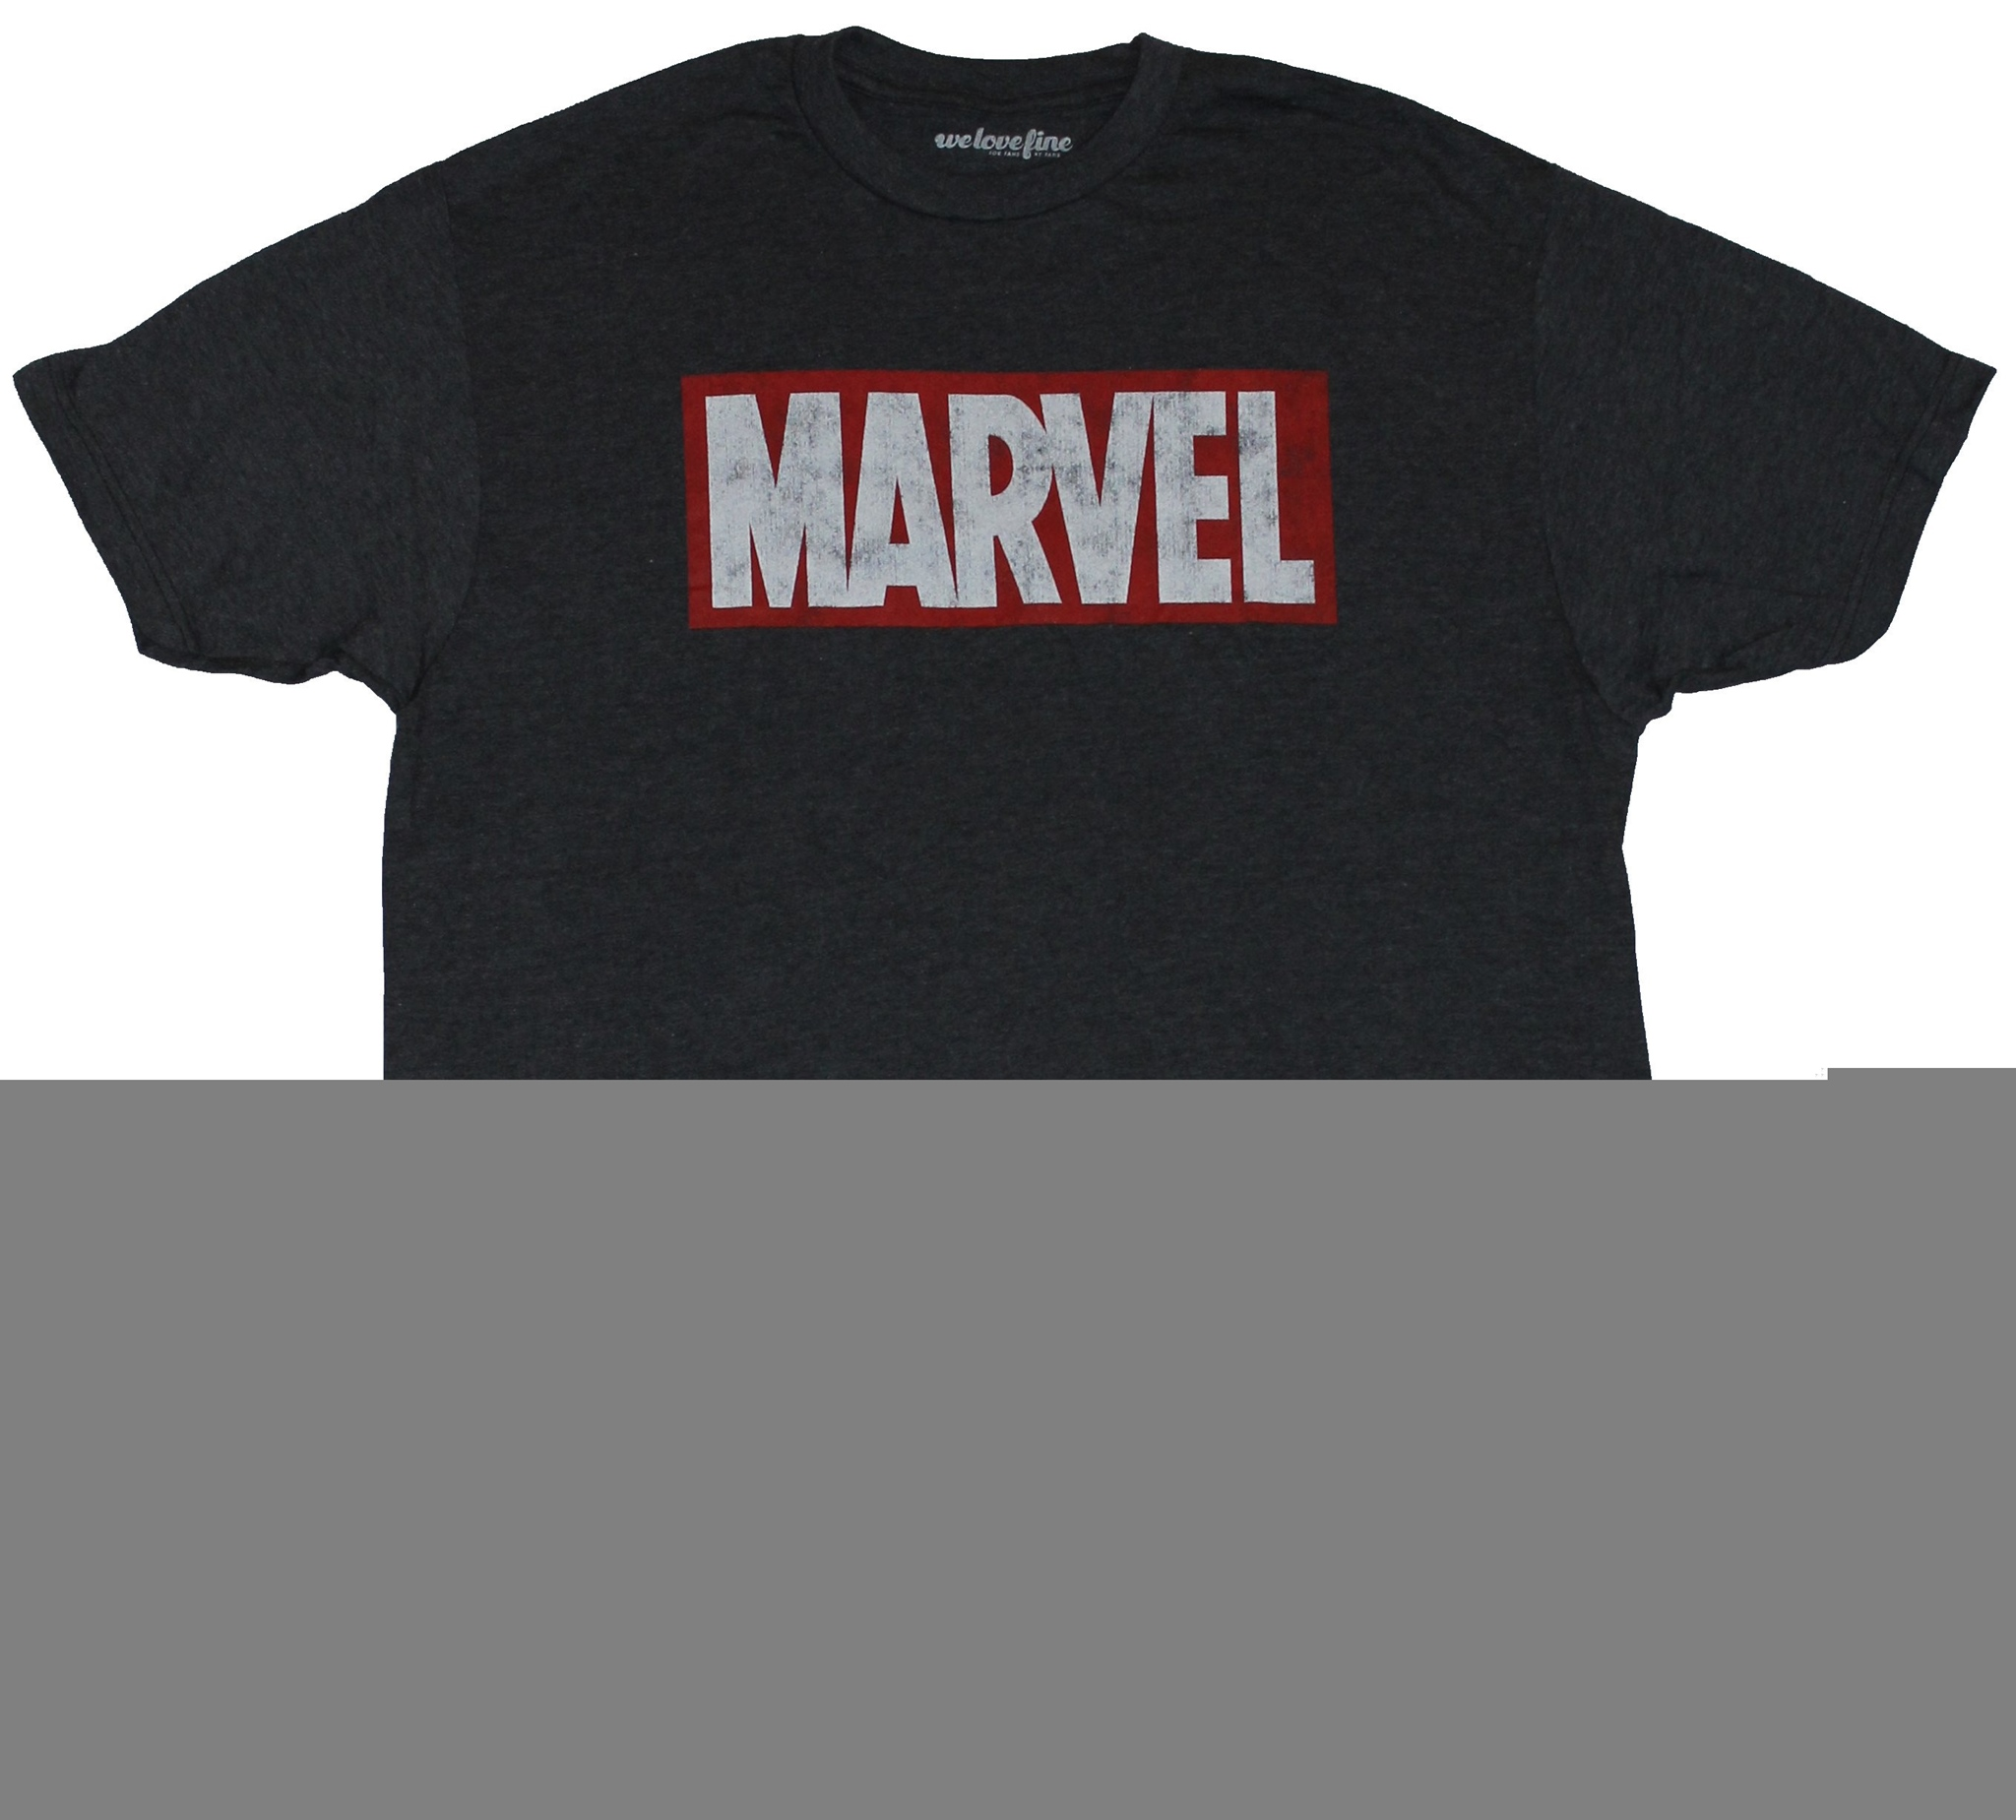 43b8c372760 Details about Marvel Comics Mens T-Shirt - Red and White Marvel Logo Box  Image